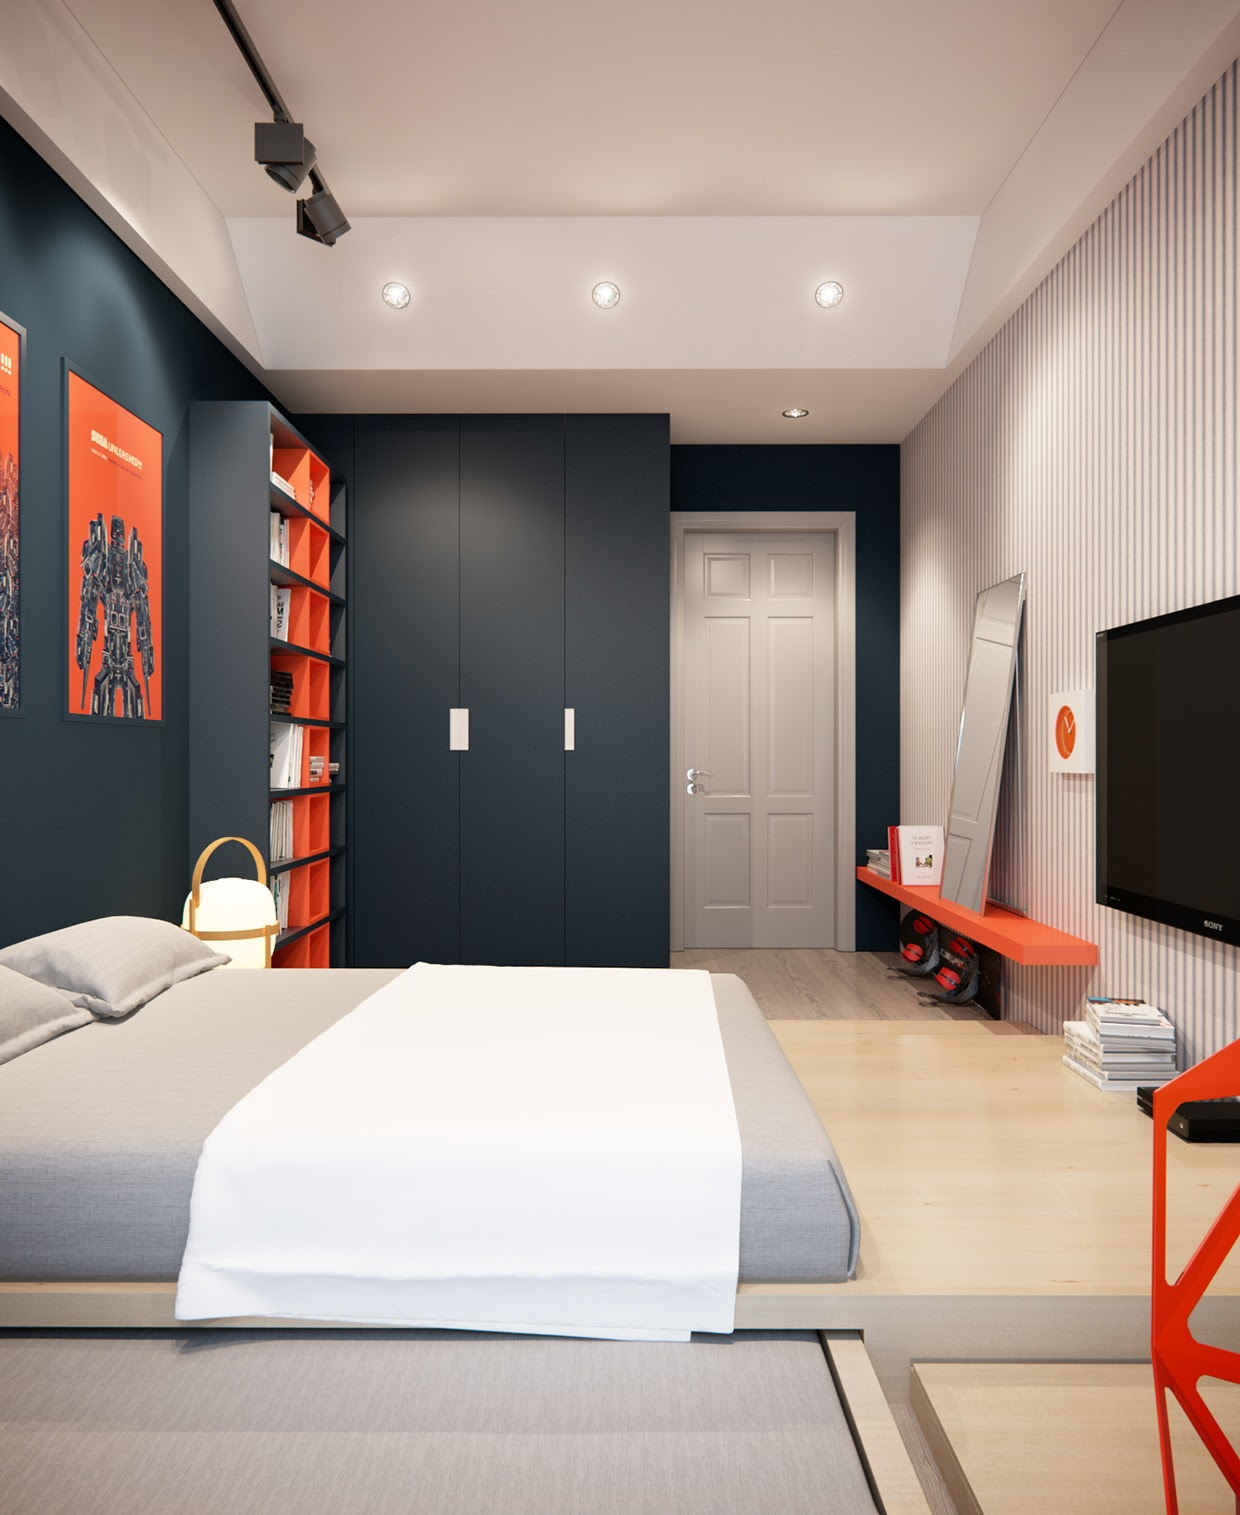 boysbedroomdesign  Interior Design Ideas.